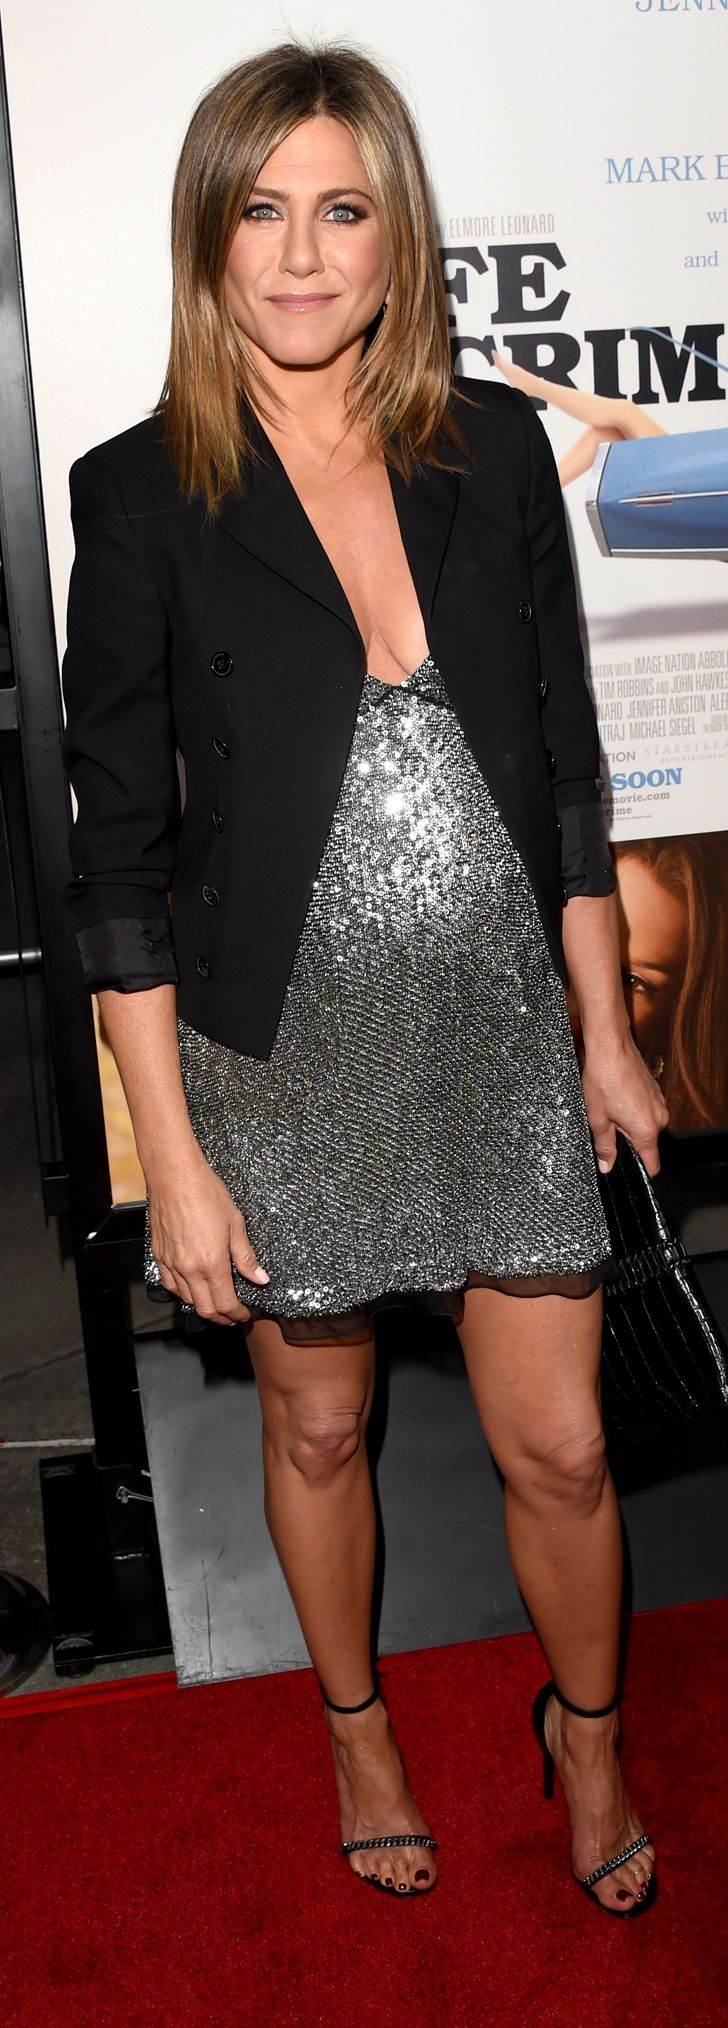 Jennifer Aniston at the Hollywood premiere of Life of Crime.